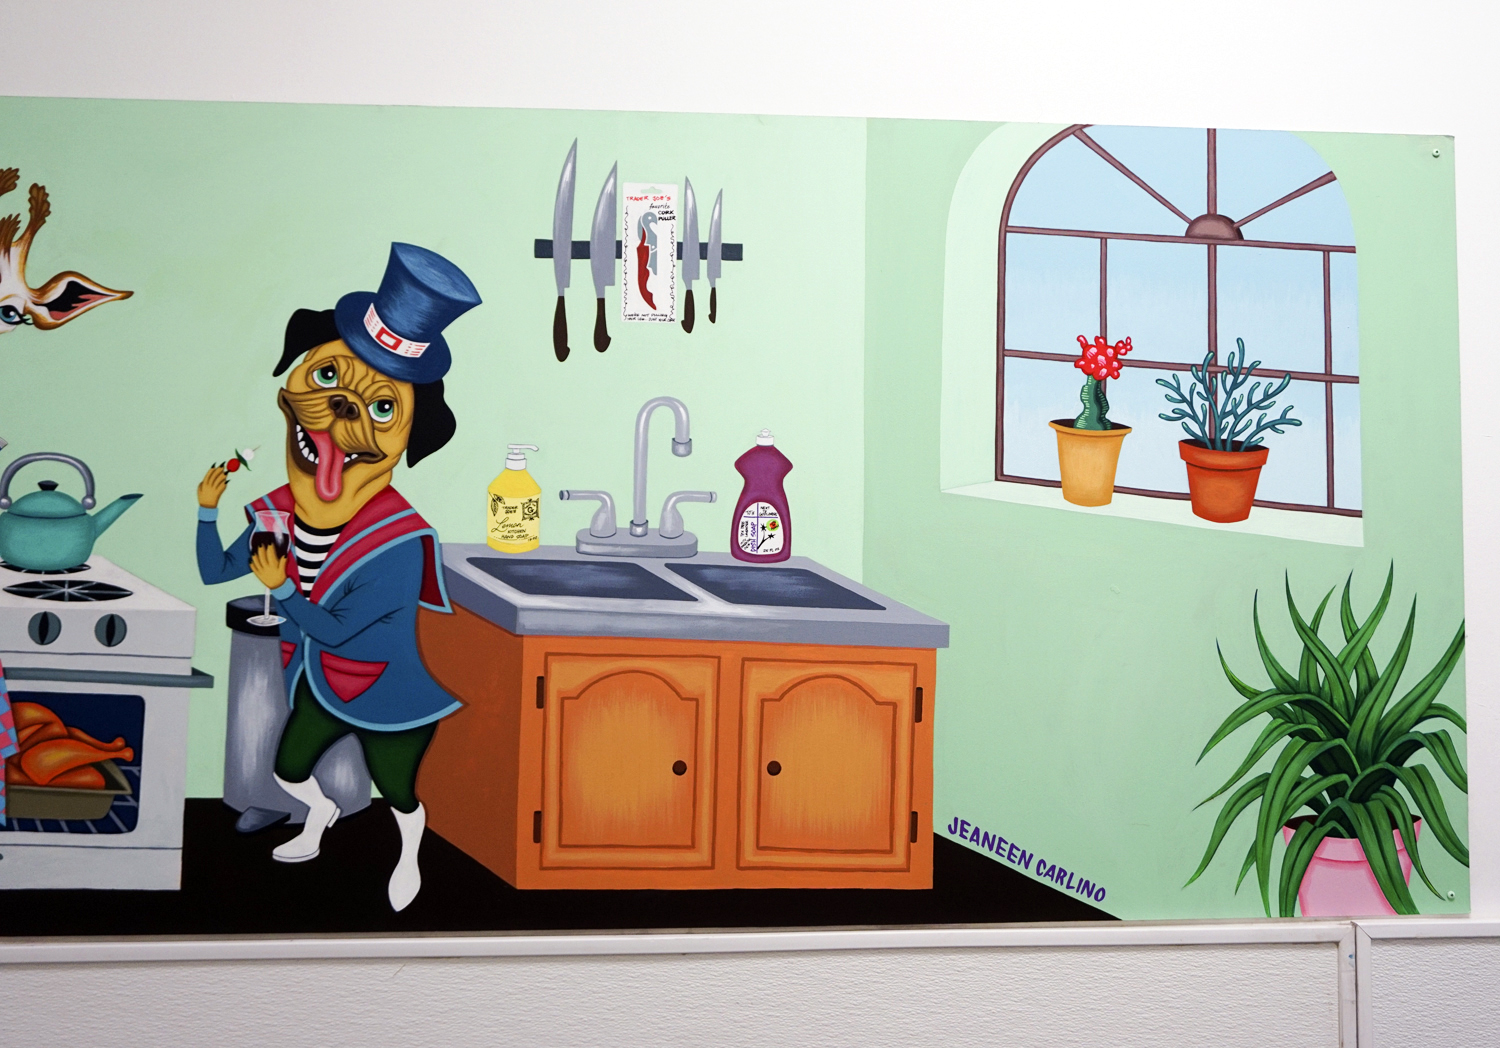 2017-Jeaneen Carlino-Mural Art-Painting-Party in the Kitchen-4.jpg